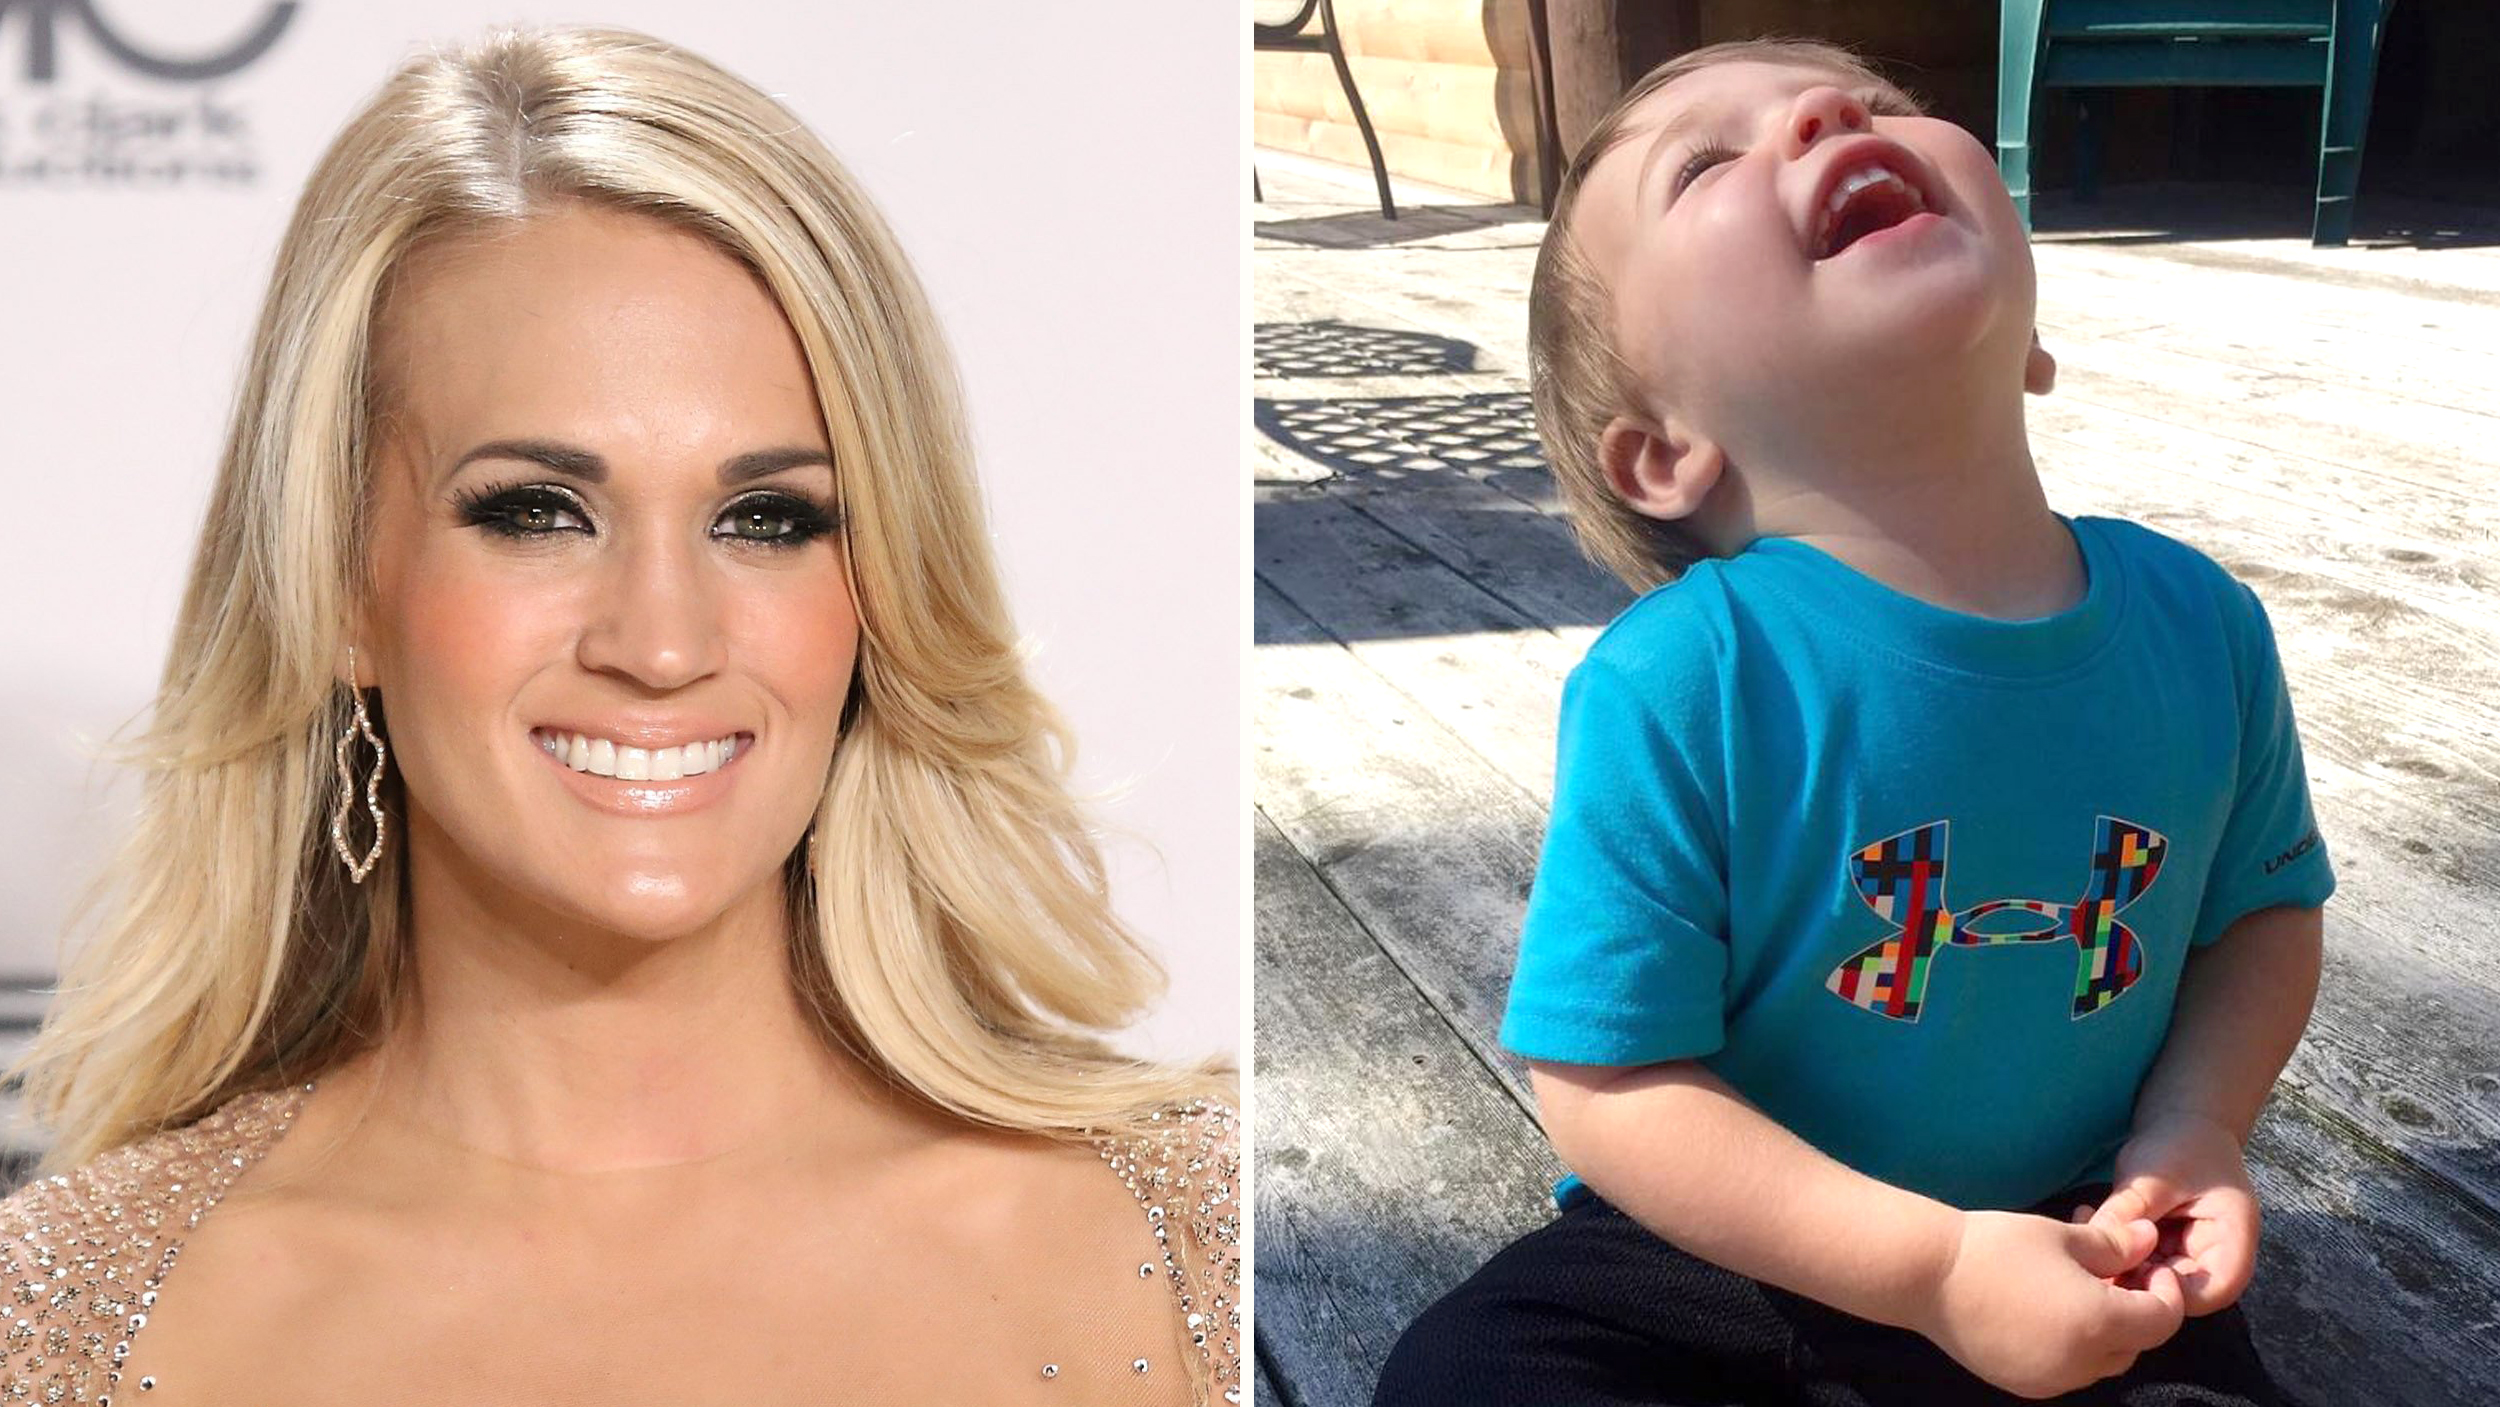 Carrie Underwood shares super cute pic of son Isaiah: 'I don't deserve such sweetness' - TODAY.com